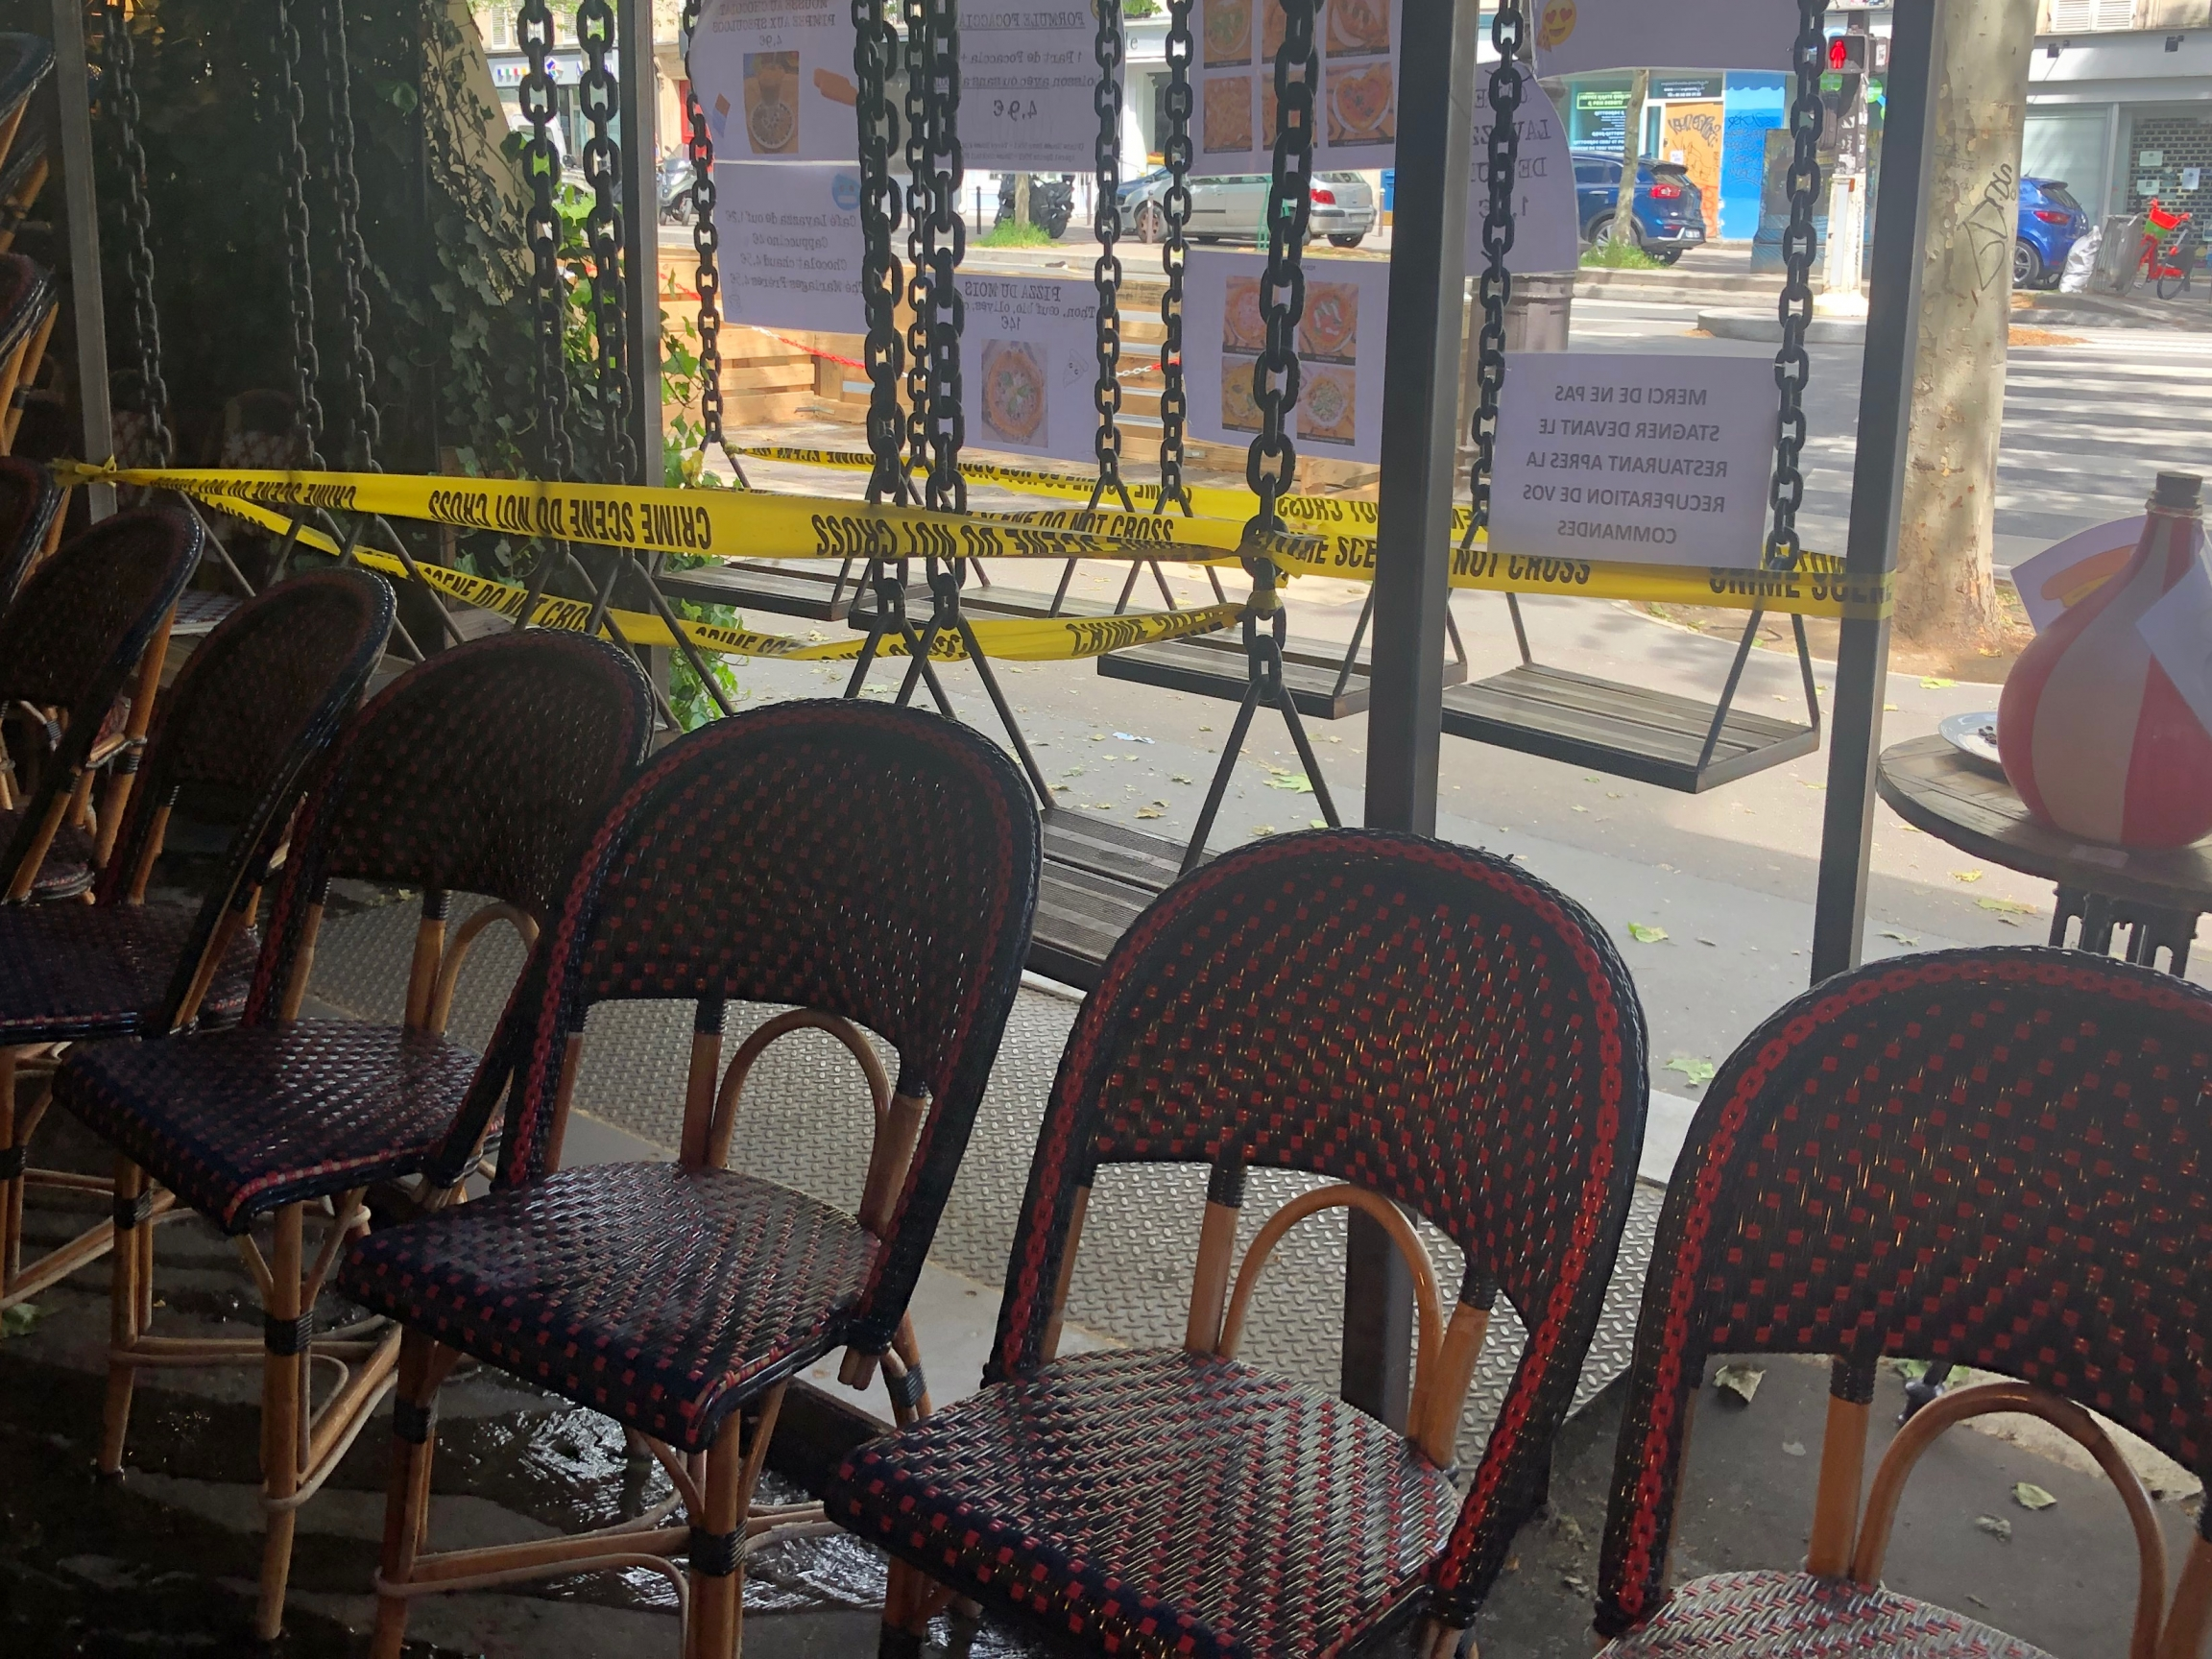 The famous Parisian wicker chairs make their comeback in preparation for Wednesday's reopening.